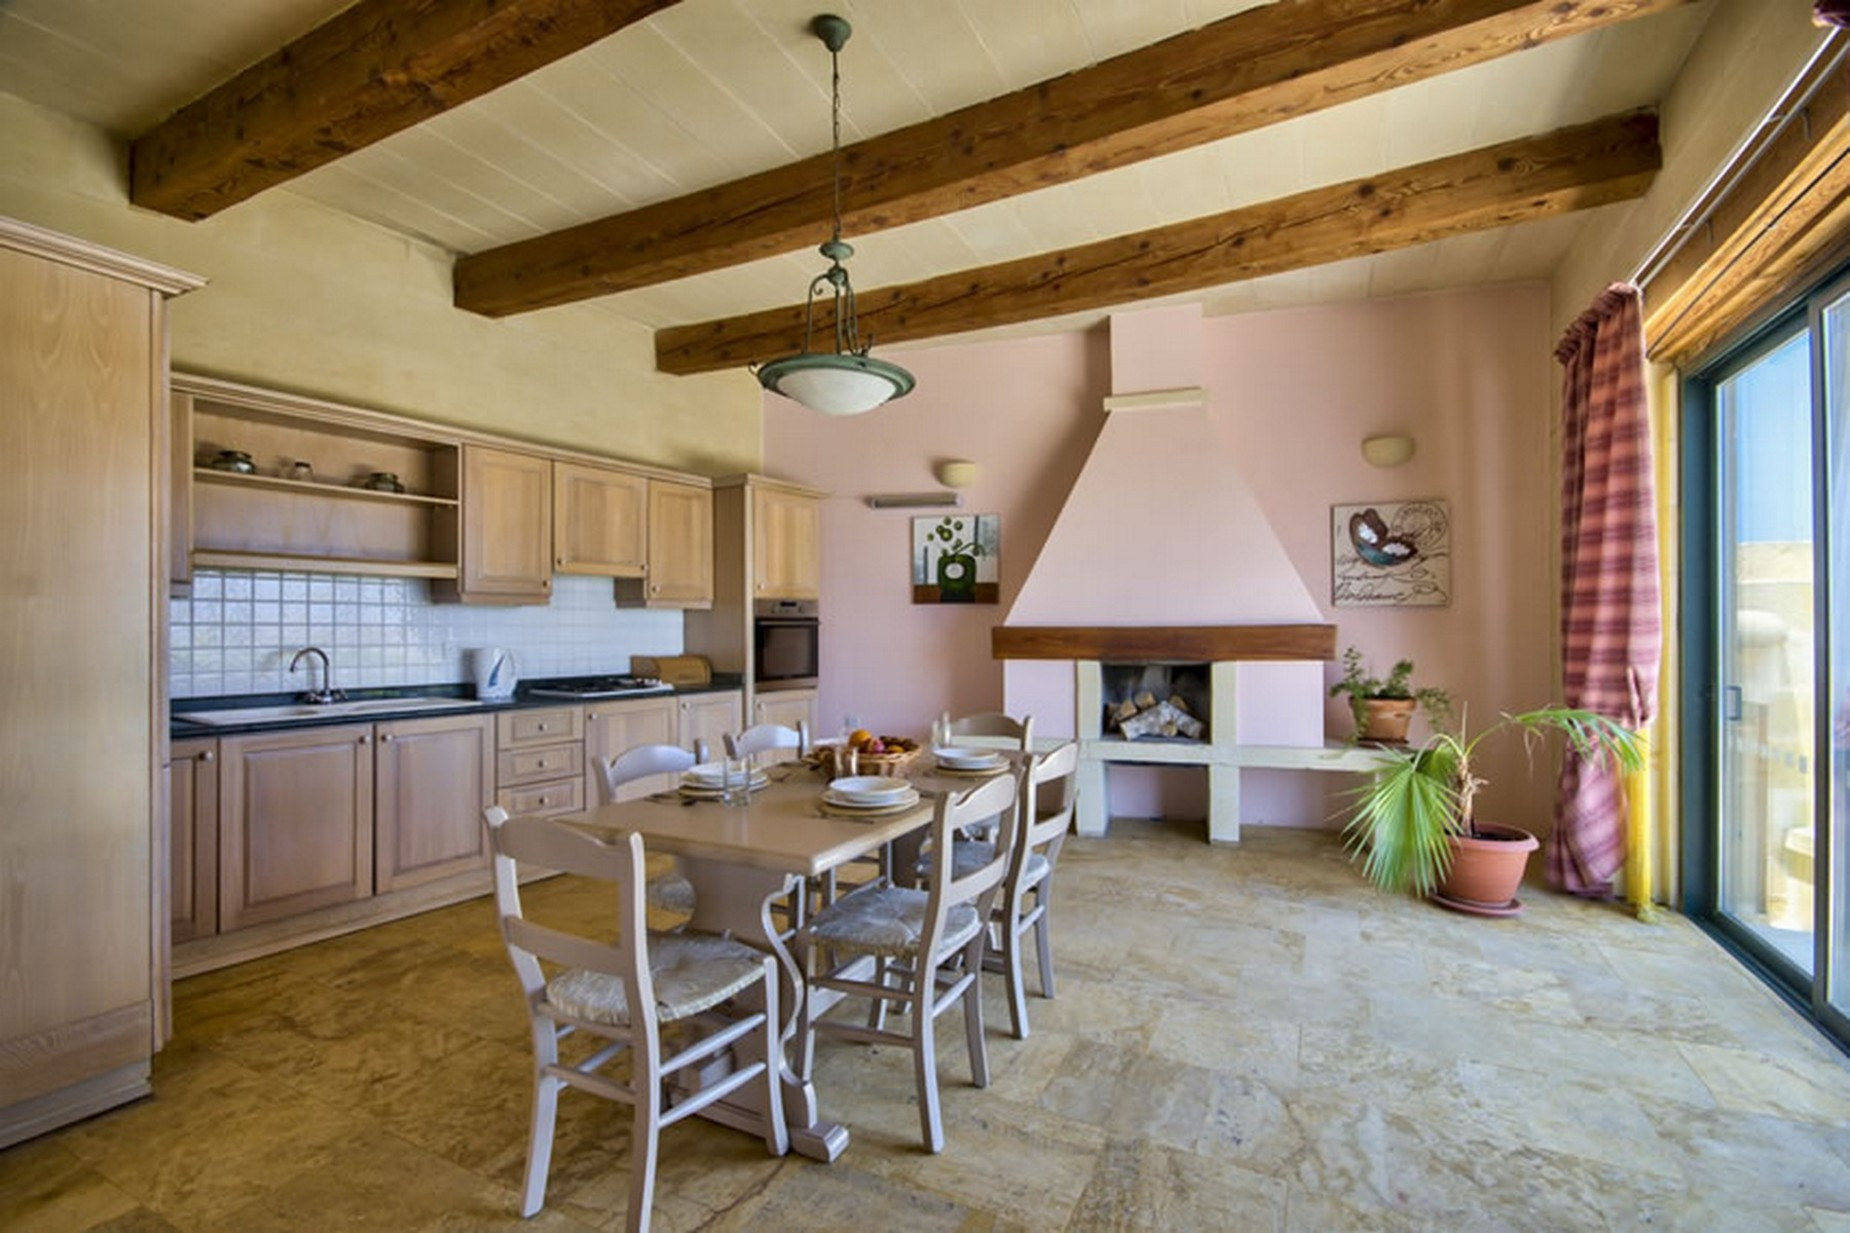 0 bed House of Character For Sale in Ghajnsielem, Ghajnsielem - thumb 7